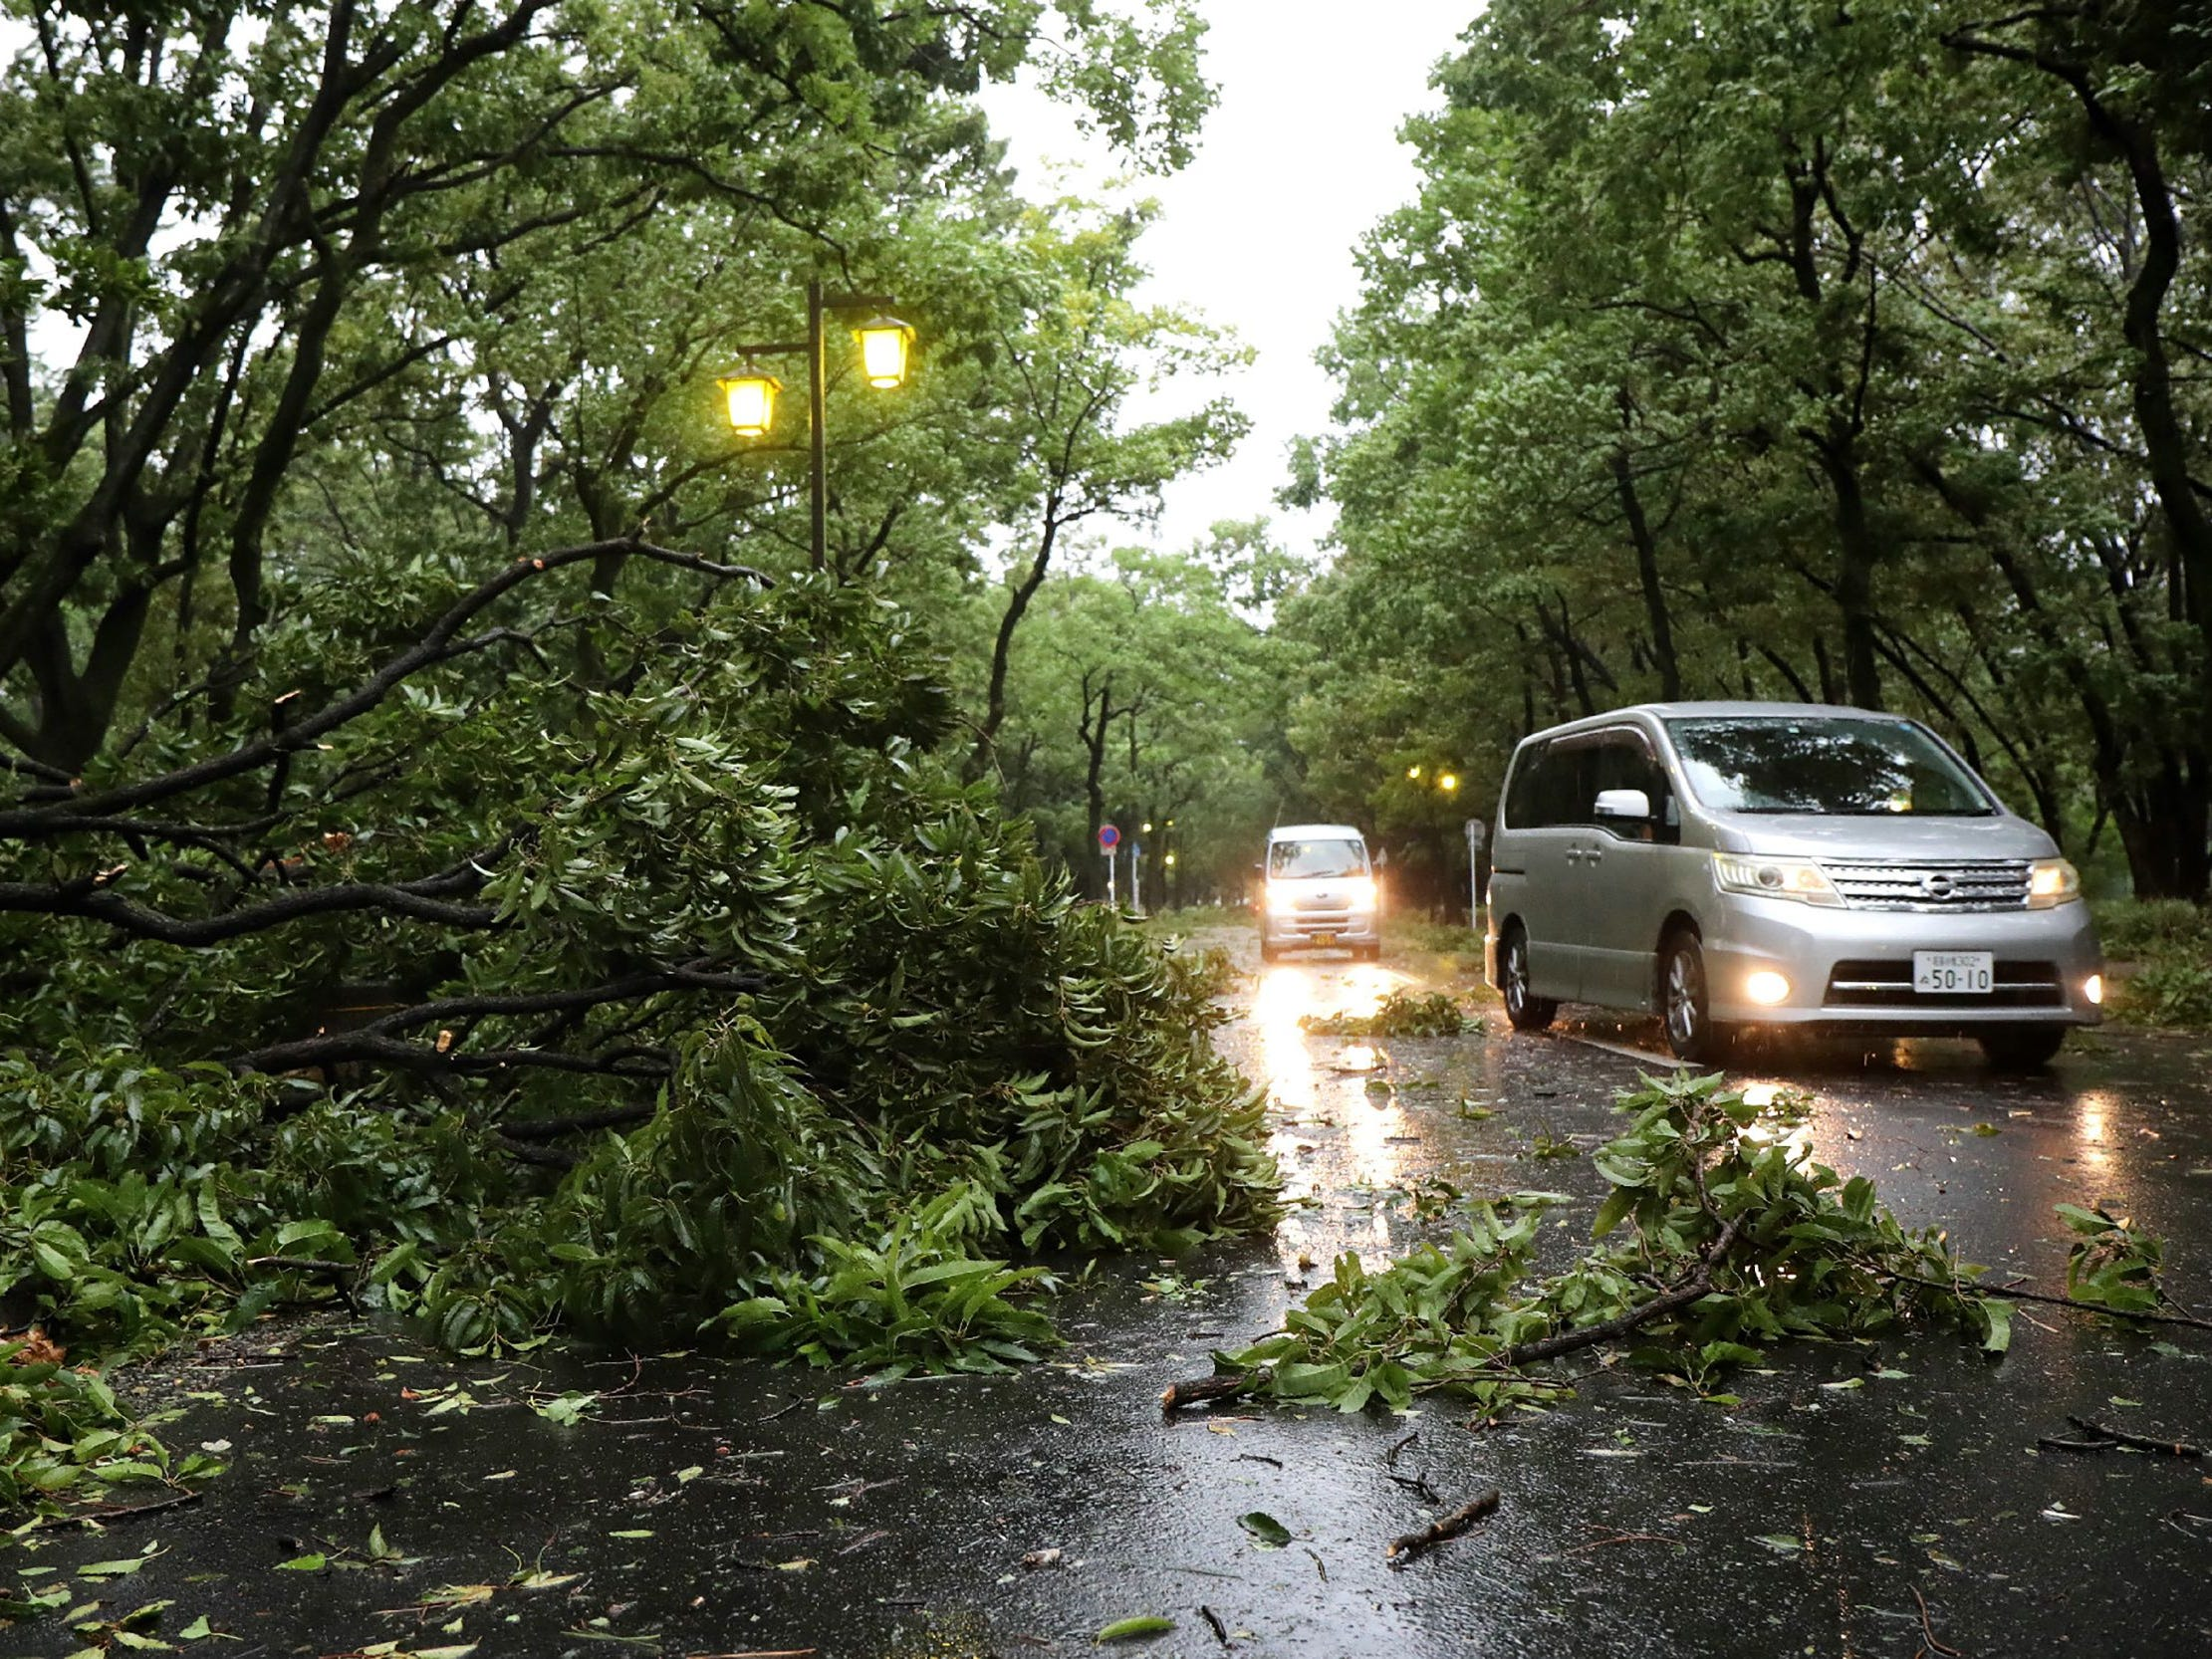 Vehicles drive past fallen trees due to weather patterns from Typhoon Jebi in Nagoya on September 4, 2018, as the typhoon made landfall around midday in southwestern Japan. - The strongest typhoon to hit Japan in 25 years made landfall on September 4, the country's weather agency said, bringing violent winds and heavy rainfall that prompted evacuation warnings. (Photo by JIJI PRESS / JIJI PRESS / AFP) / Japan OUTJIJI PRESS/AFP/Getty Images ORIG FILE ID: AFP_18U2NL